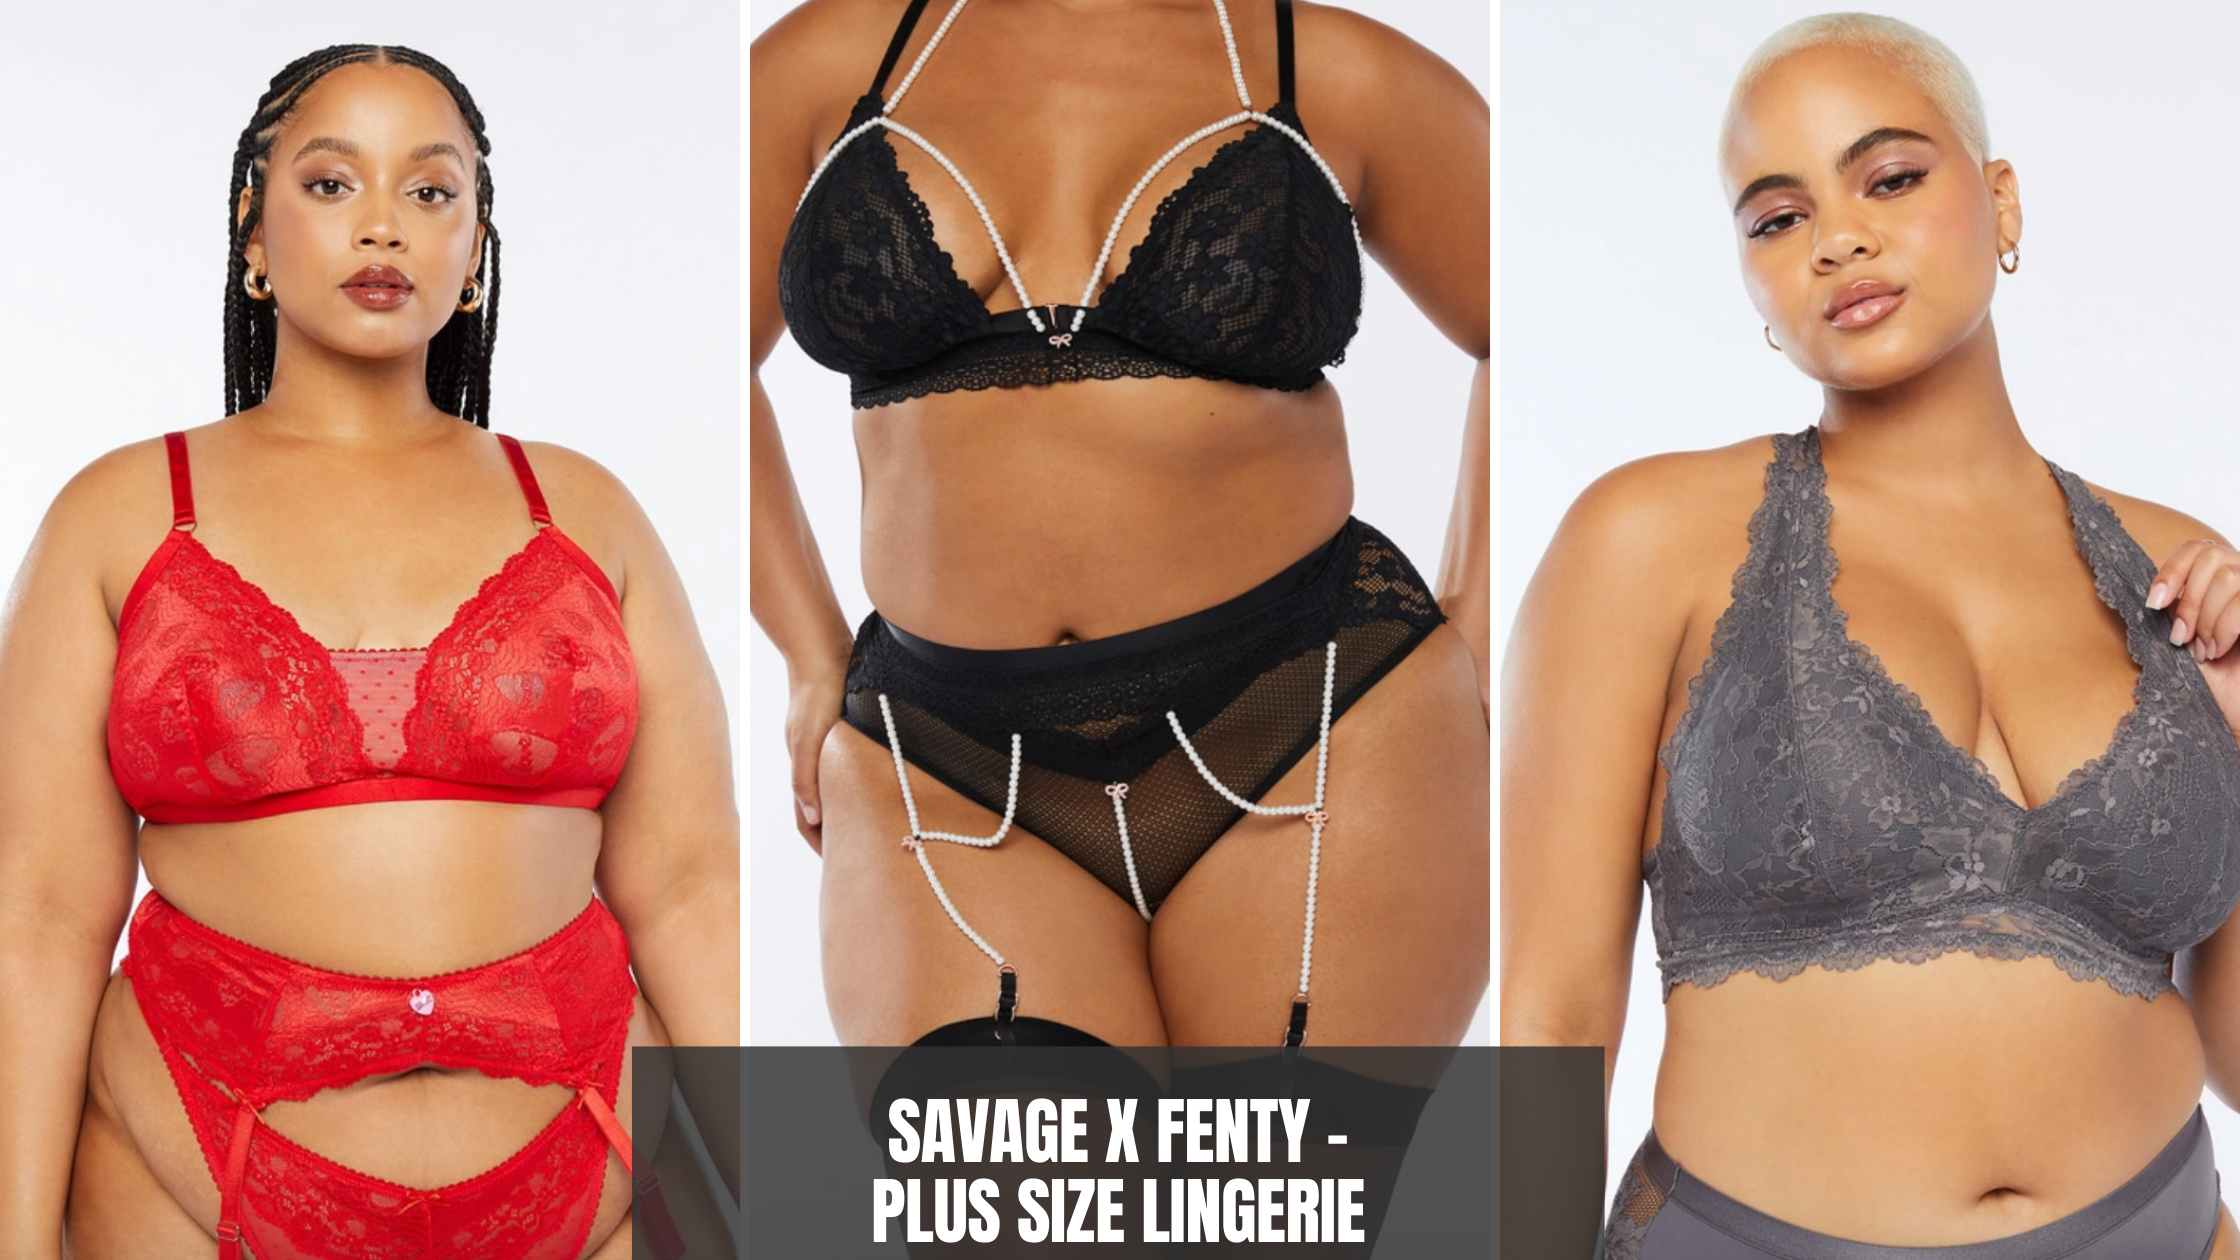 where to buy plus size lingerie - Savage x Fenty